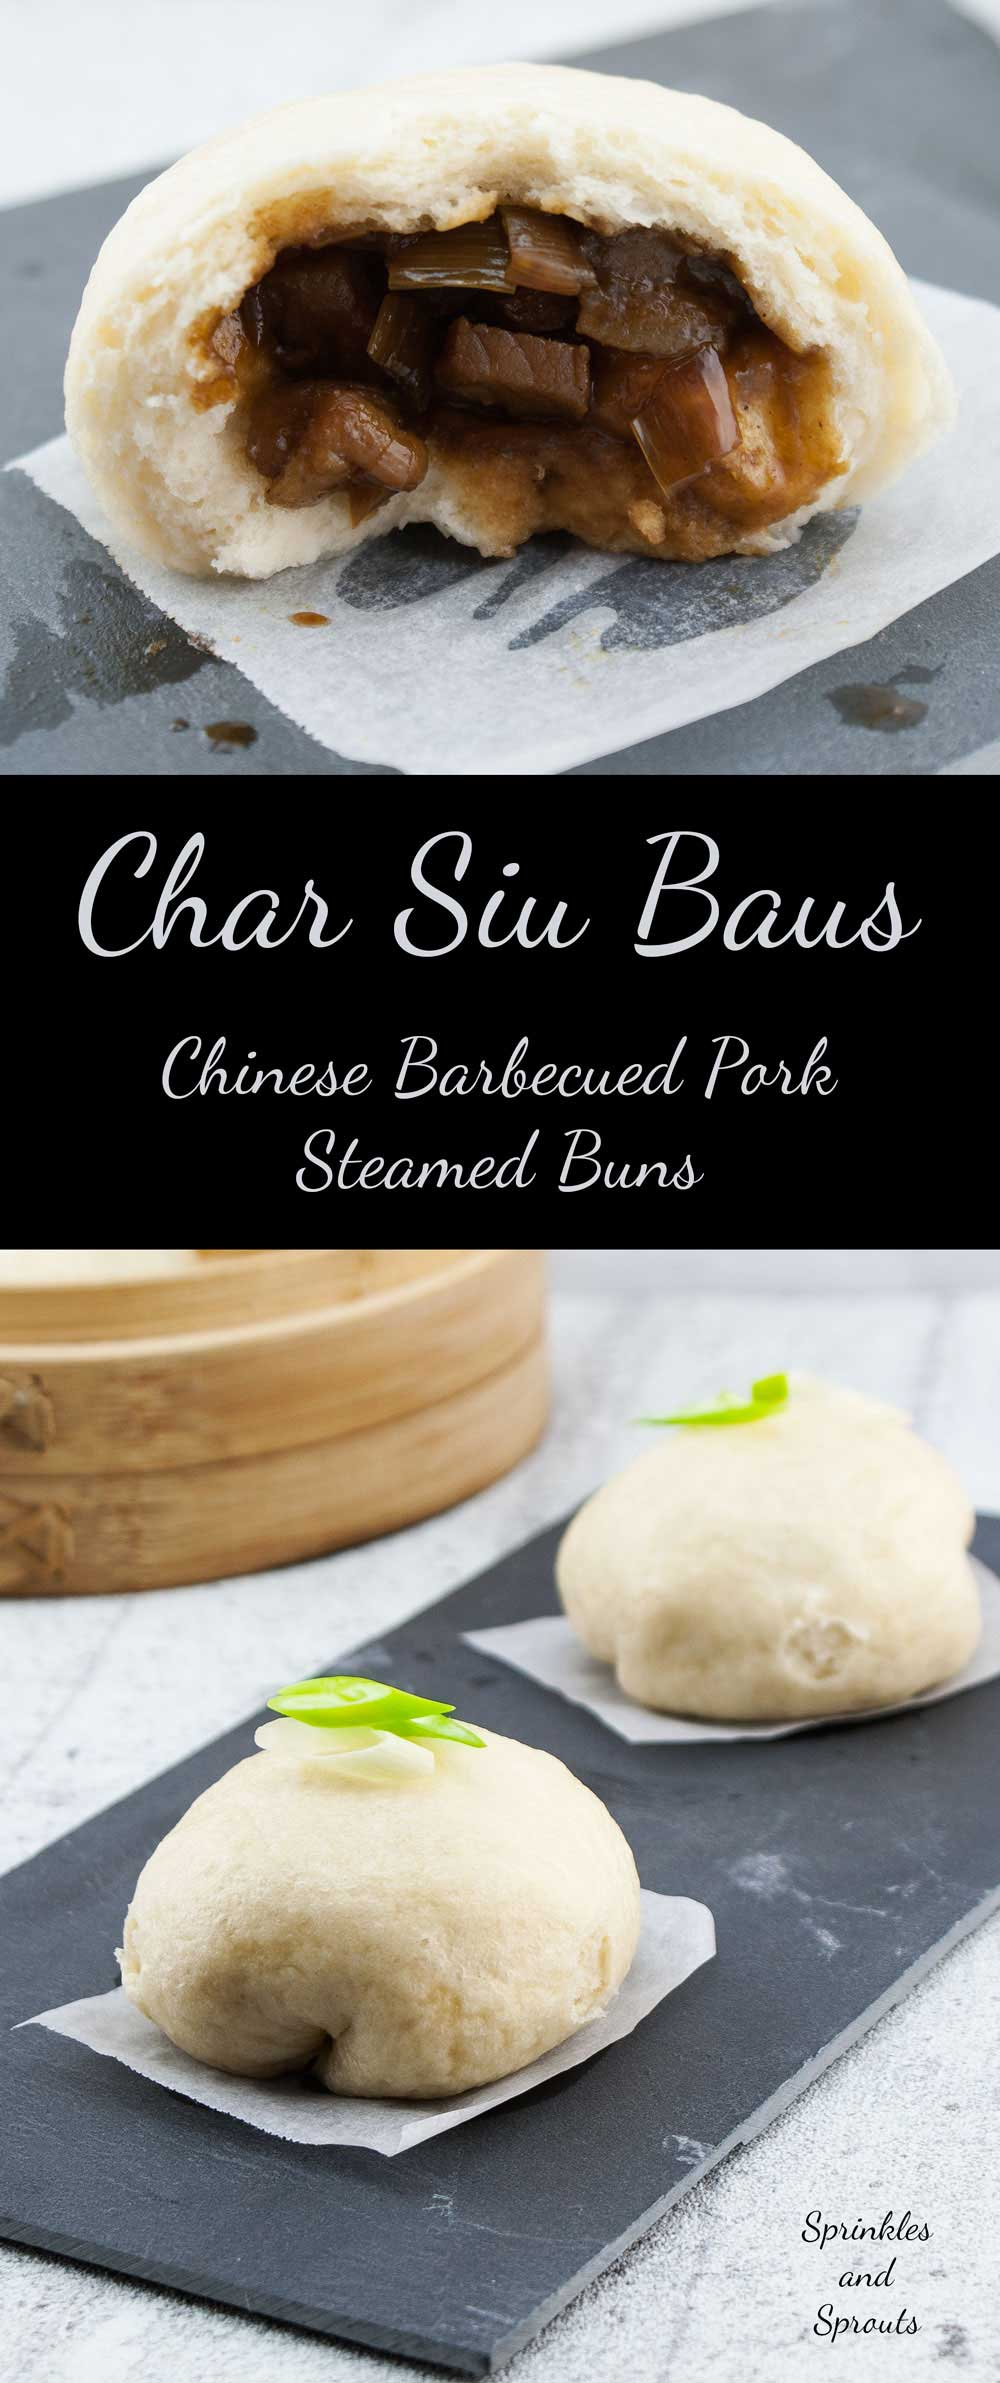 Char Siu Bau - Chinese Barbecued Pork Steamed Buns